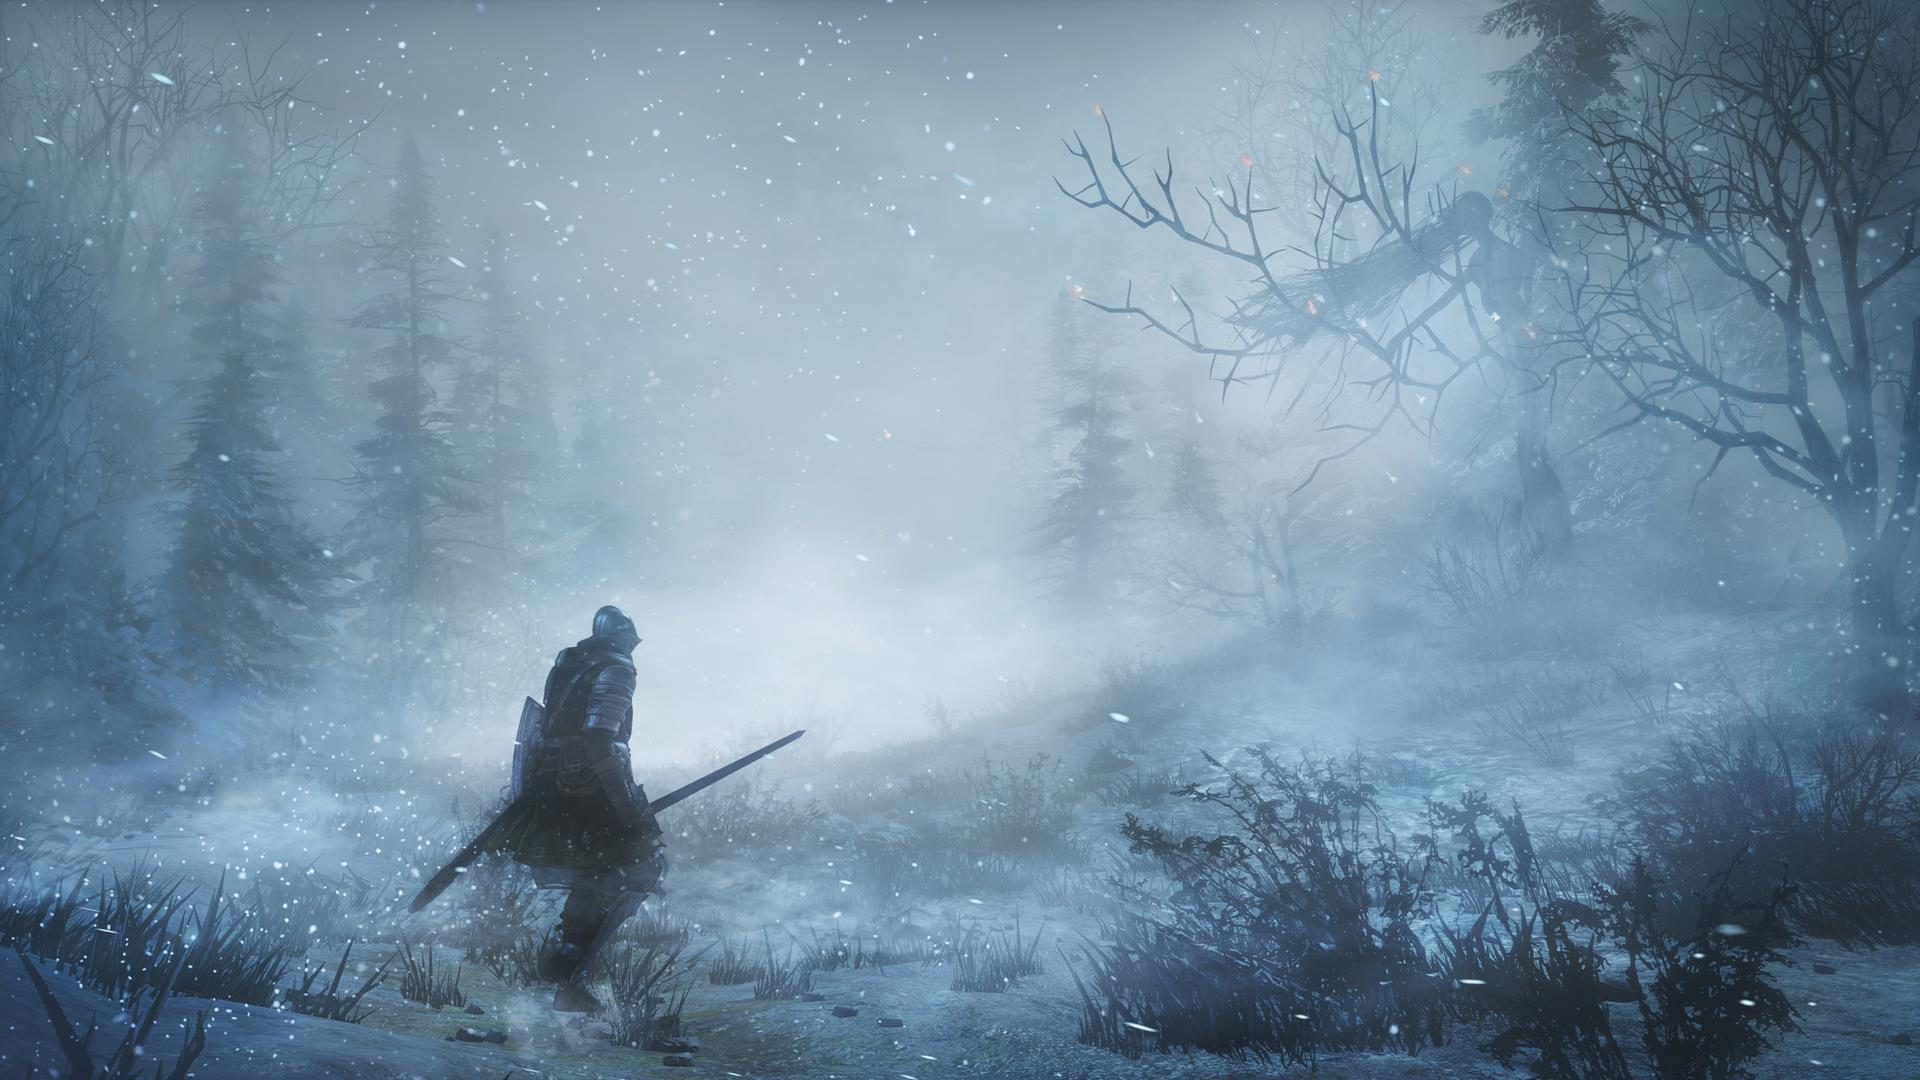 Choose Your Alliegiance in New Dark Souls III: Ashes of Ariandel Trailer